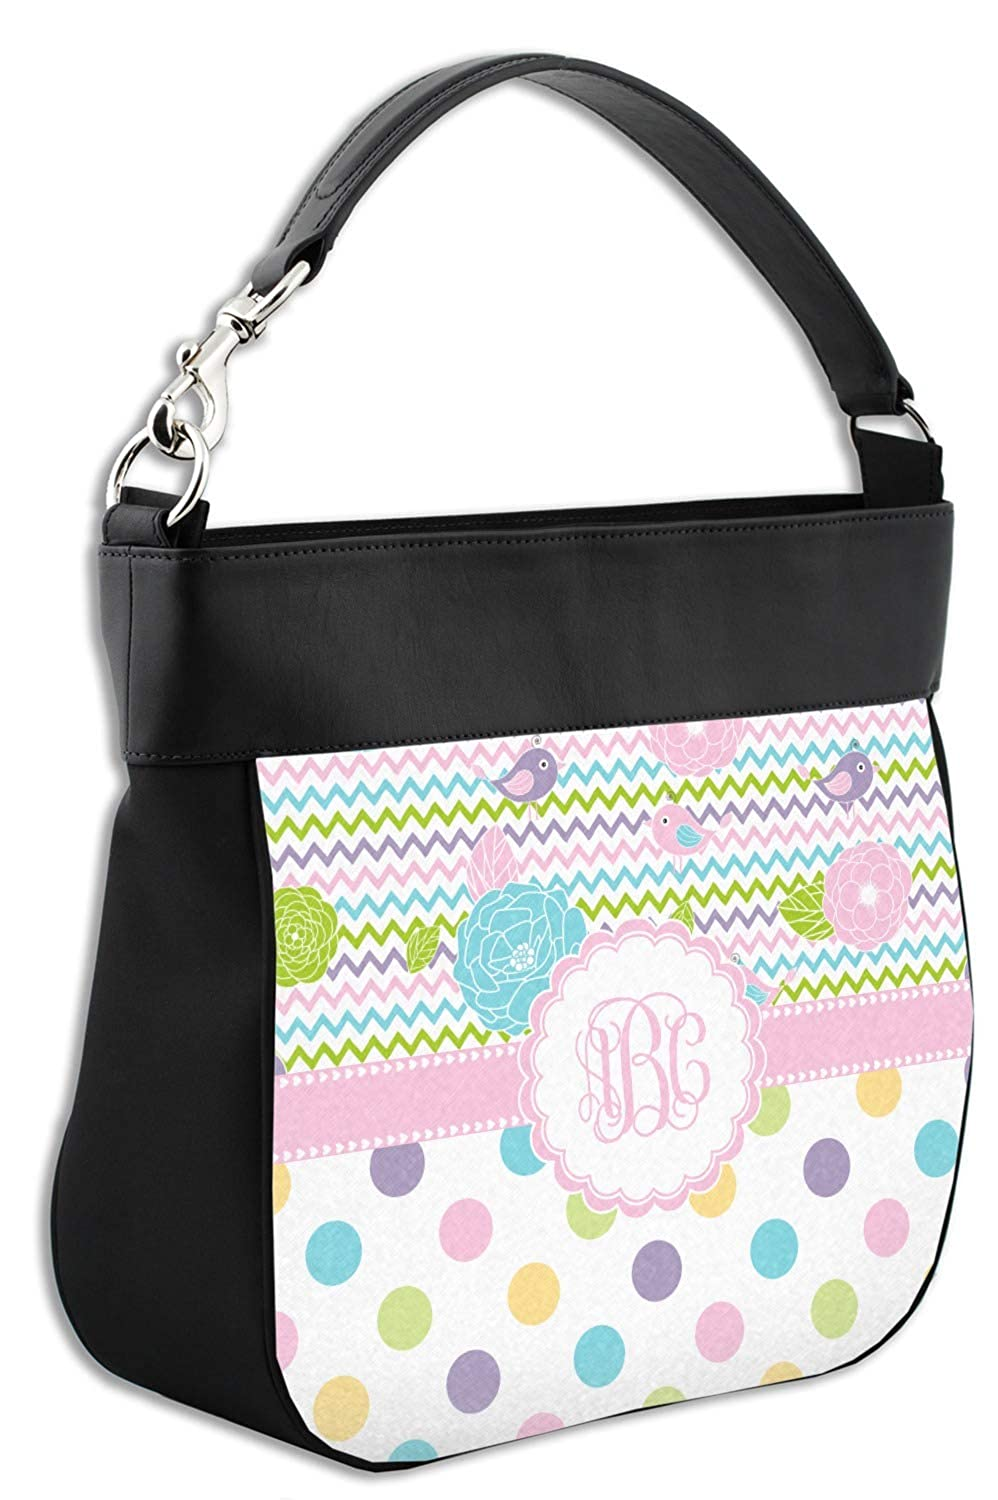 Personalized Girly Girl Hobo Purse w//Genuine Leather Trim Front